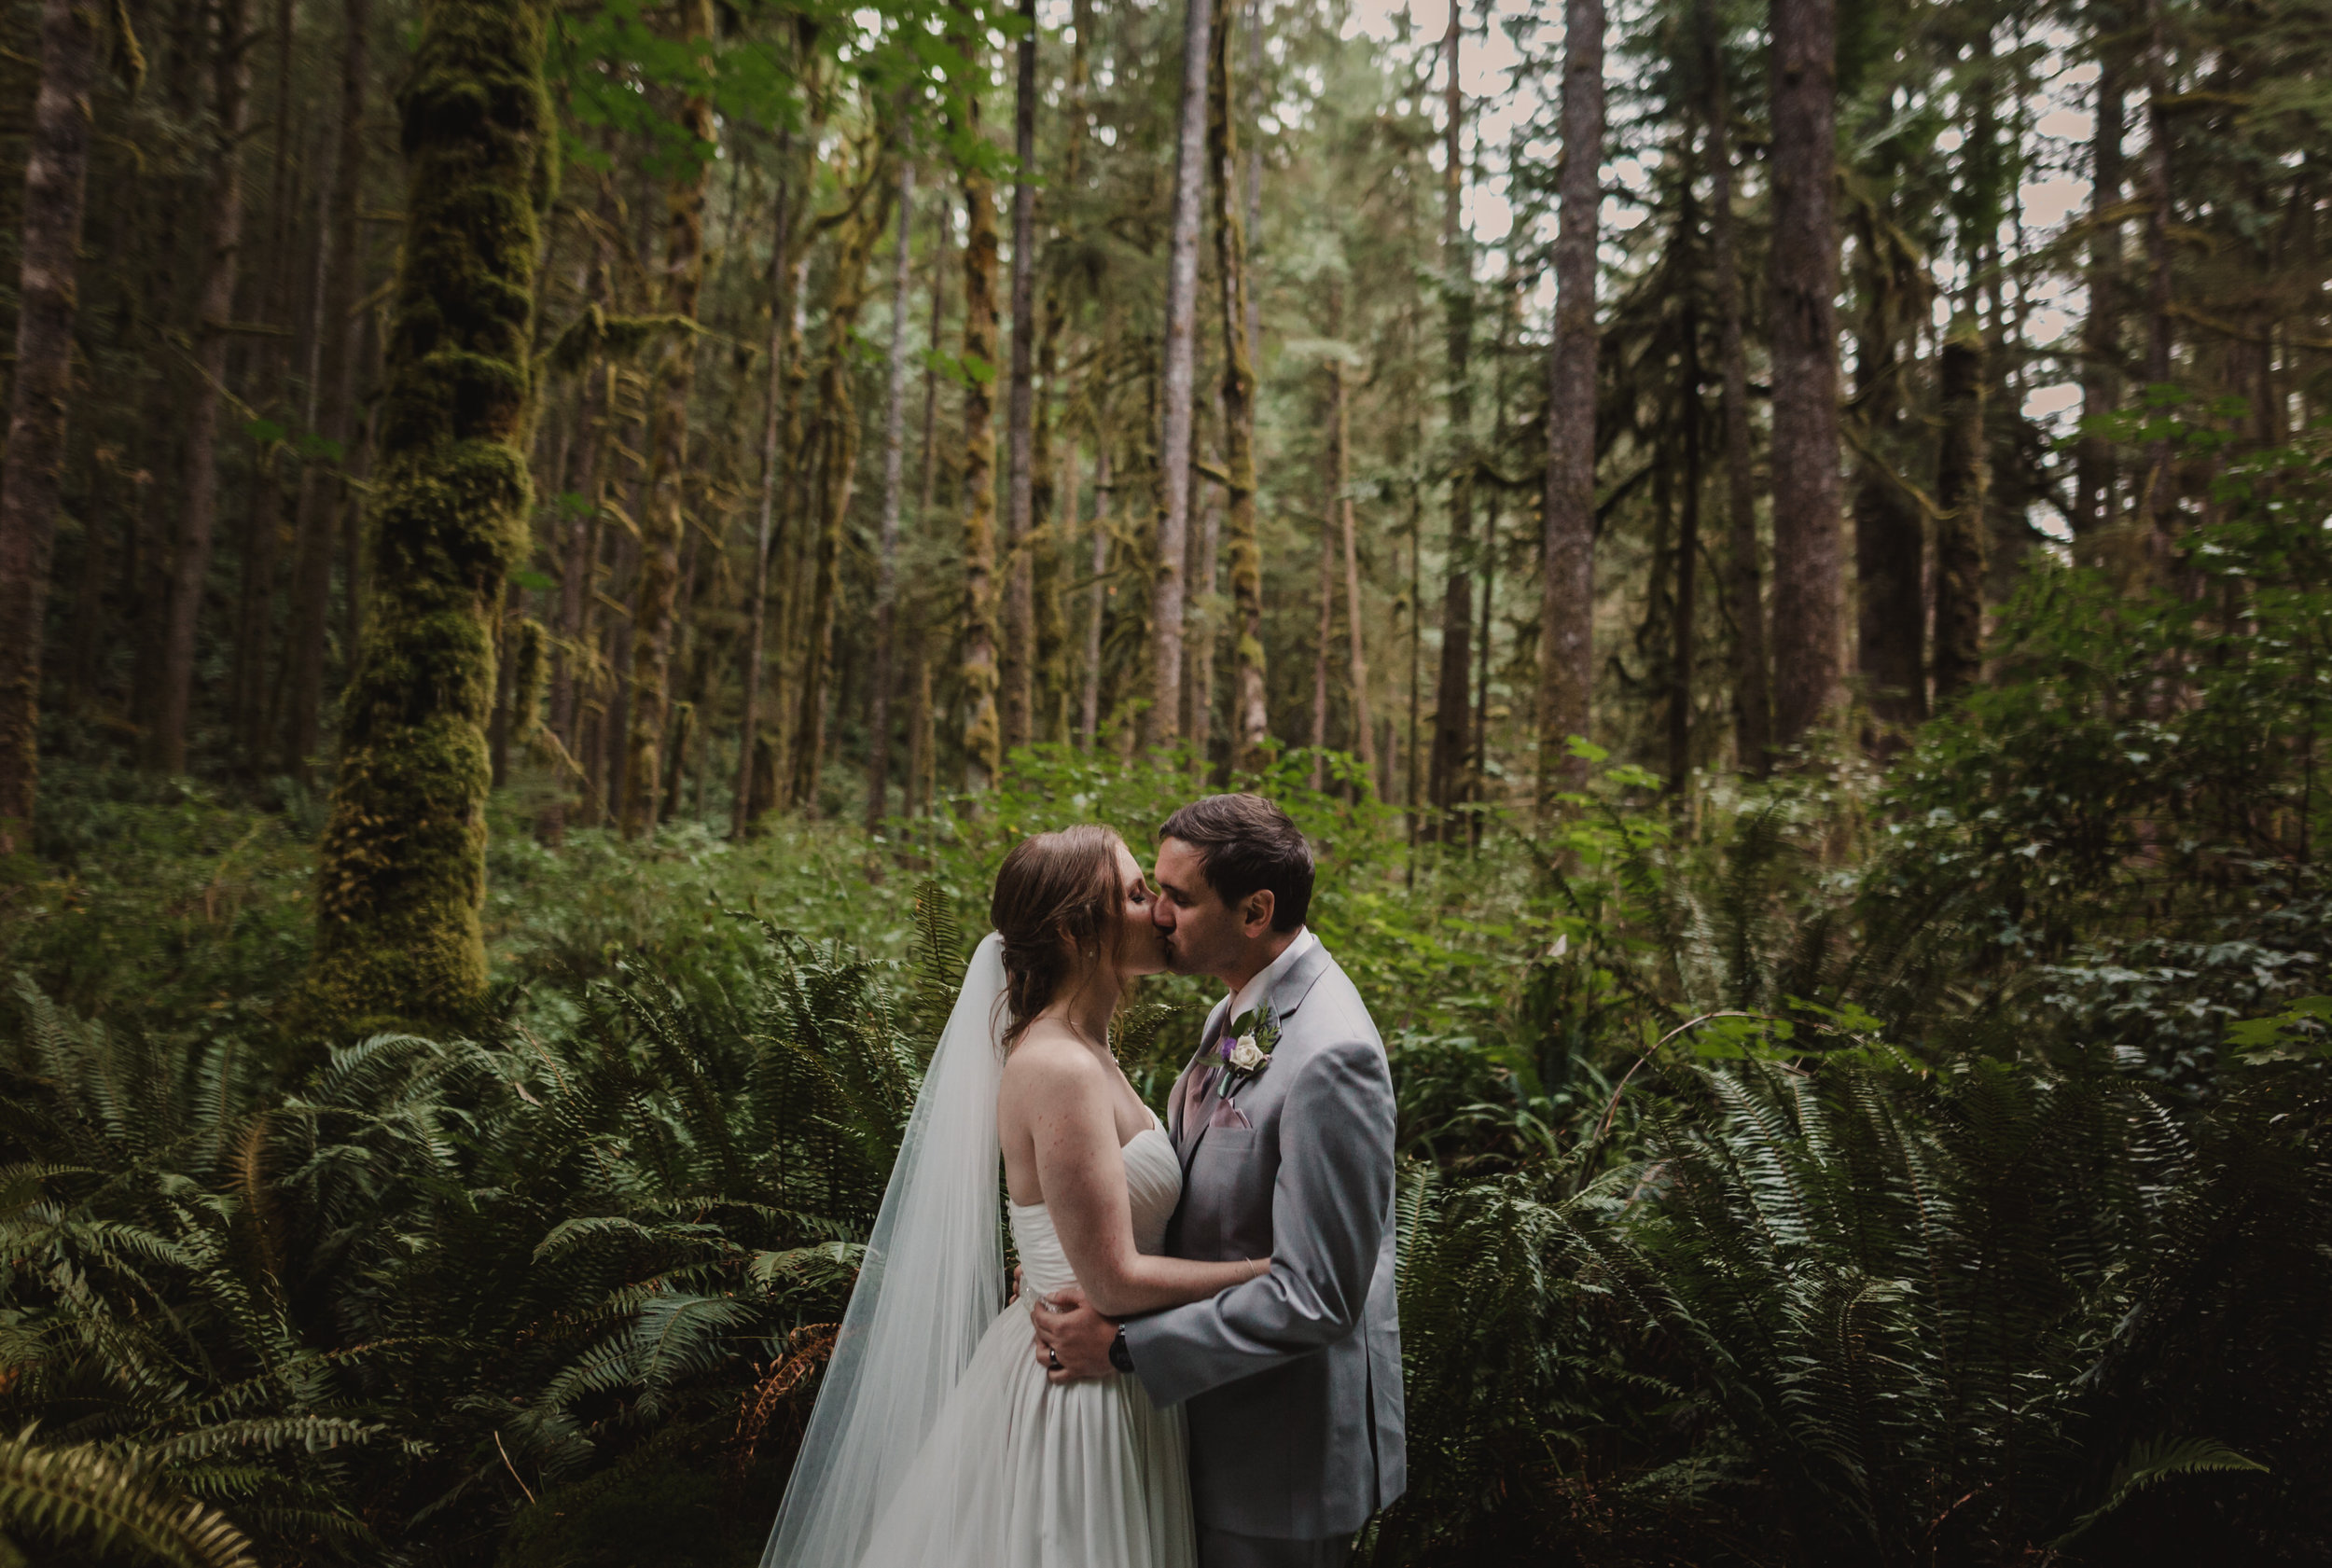 West Coast Wilderness Lodge Wedding Photos - Vancouver Wedding Photographer & Videographer - Sunshine Coast Wedding Photos - Sunshine Coast Wedding Photographer - Jennifer Picard Photography - IMG_7129.jpg